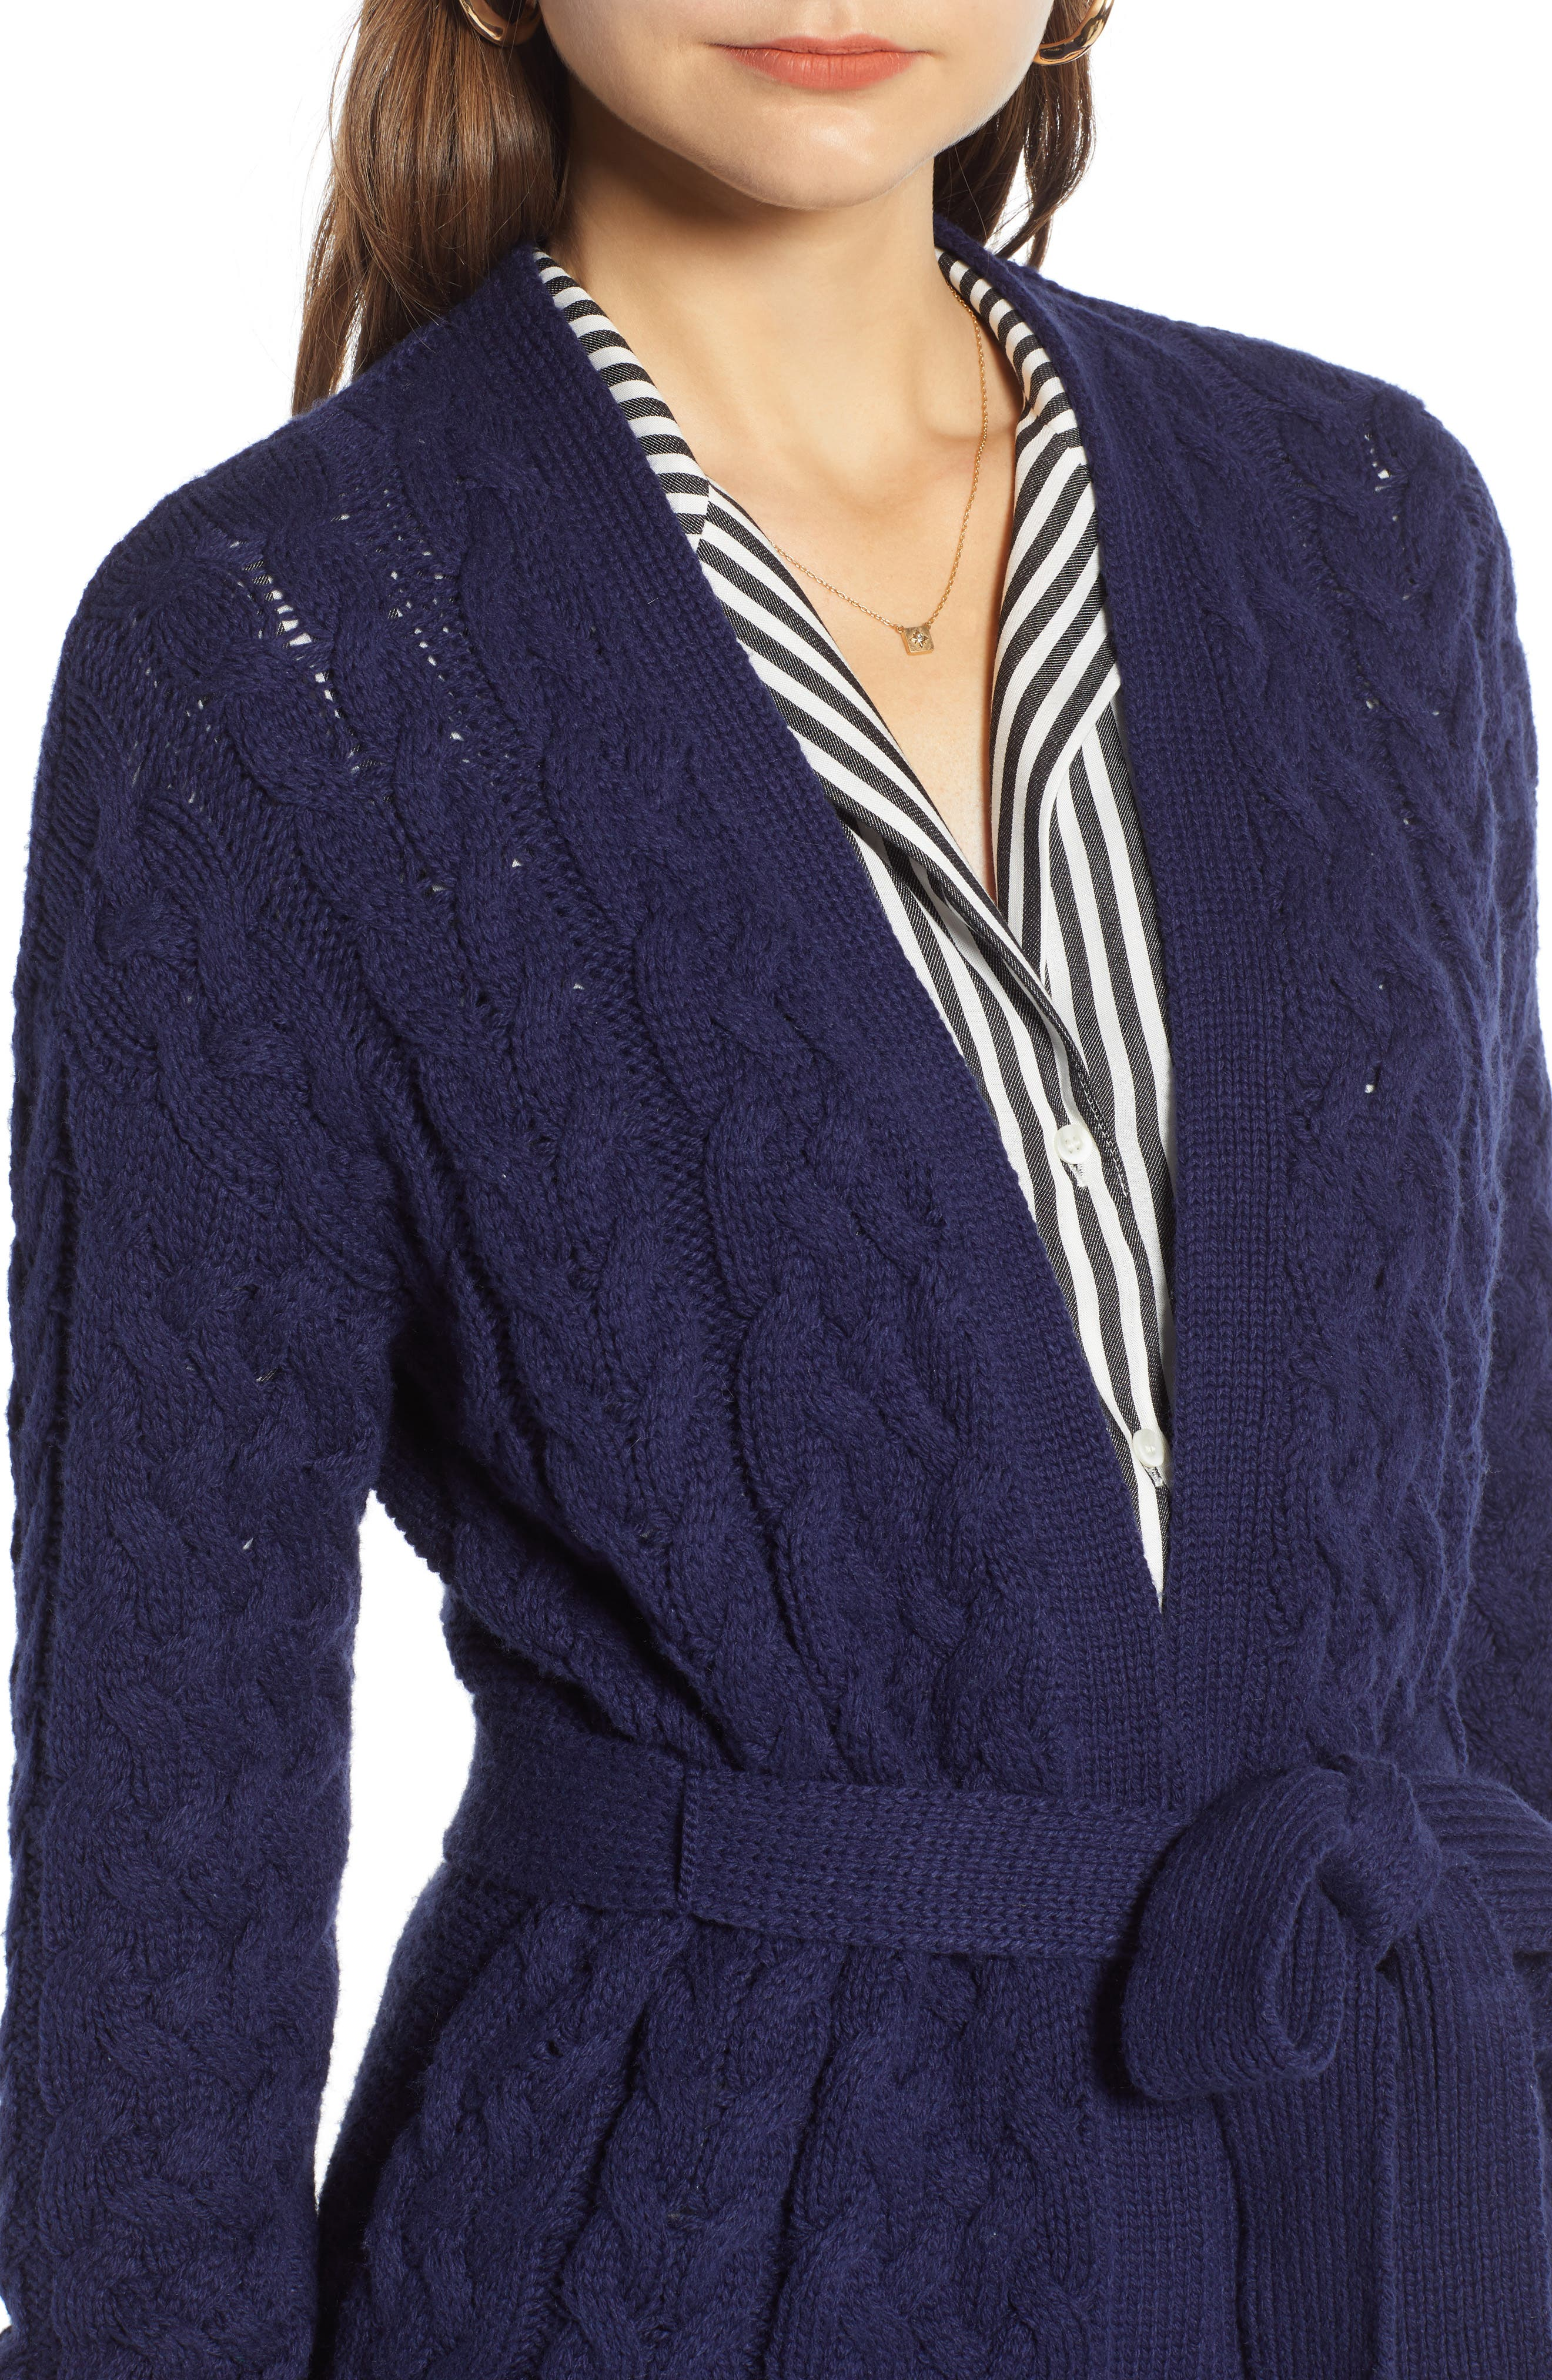 TREASURE & BOND,                             Cable Knit Belted Wrap Cardigan,                             Alternate thumbnail 4, color,                             NAVY MARITIME